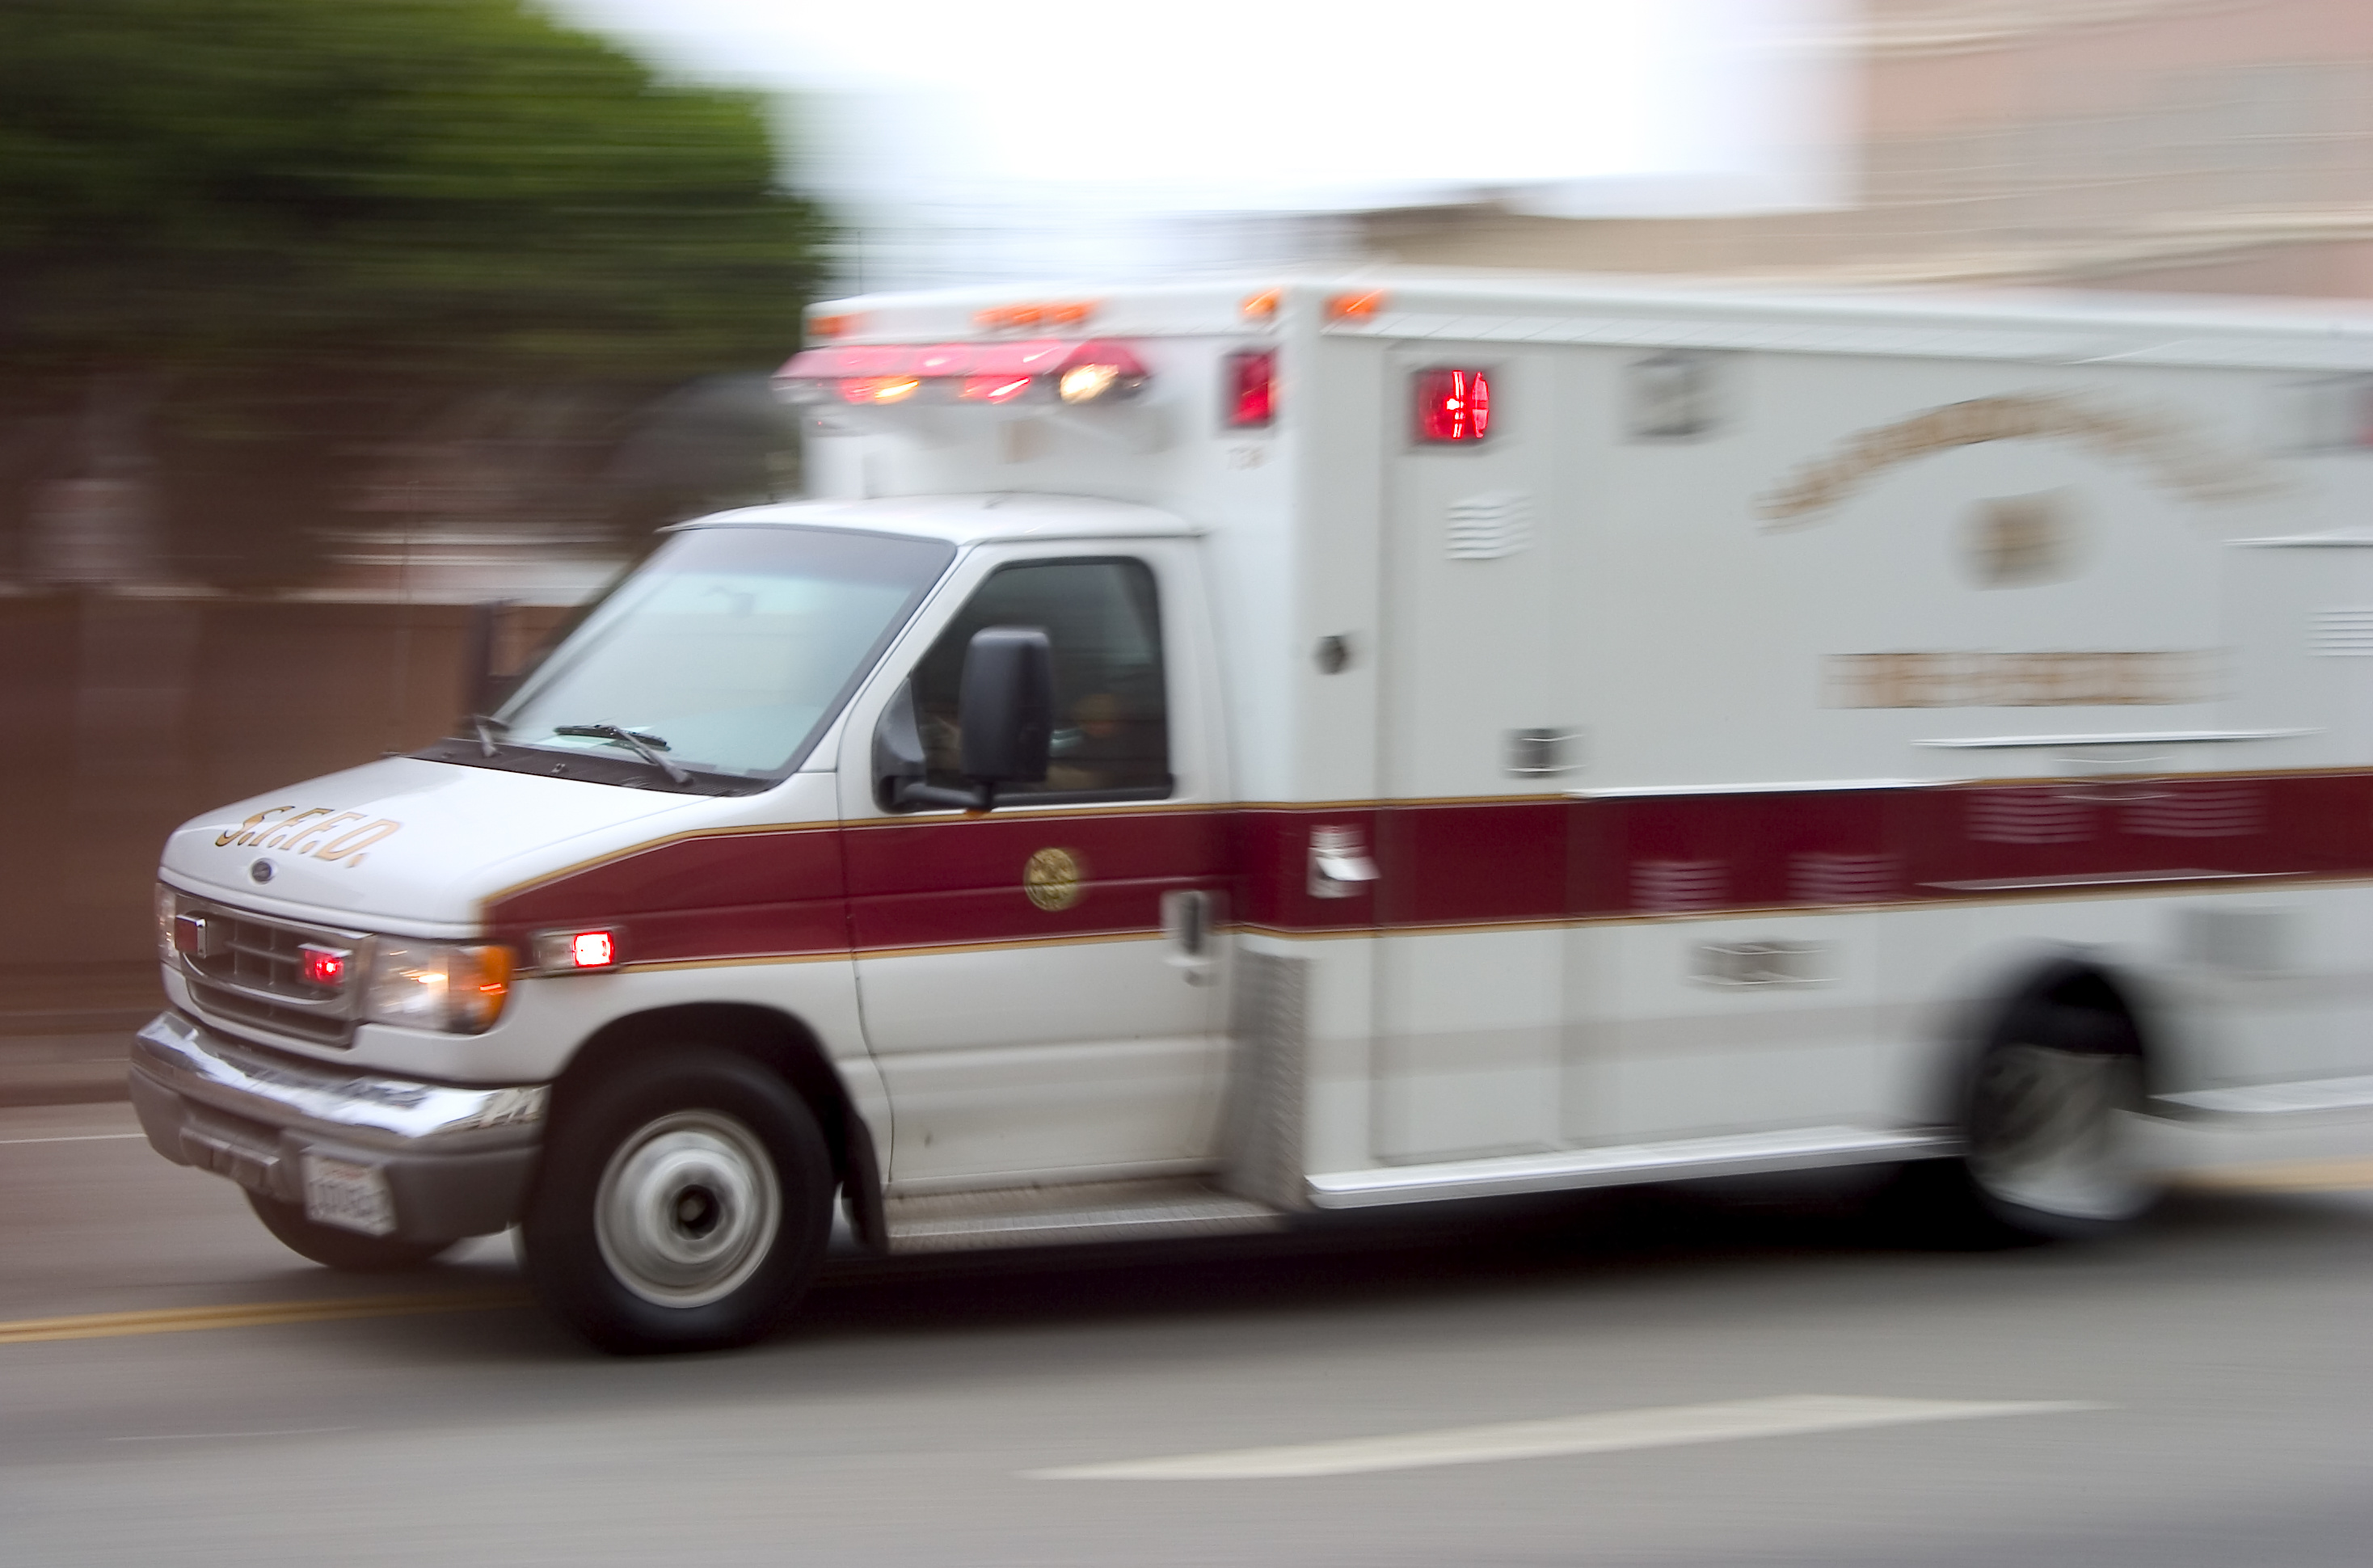 In a nationwide first, New Jersey authorizes paramedics to start addiction treatment at the scene of an overdose